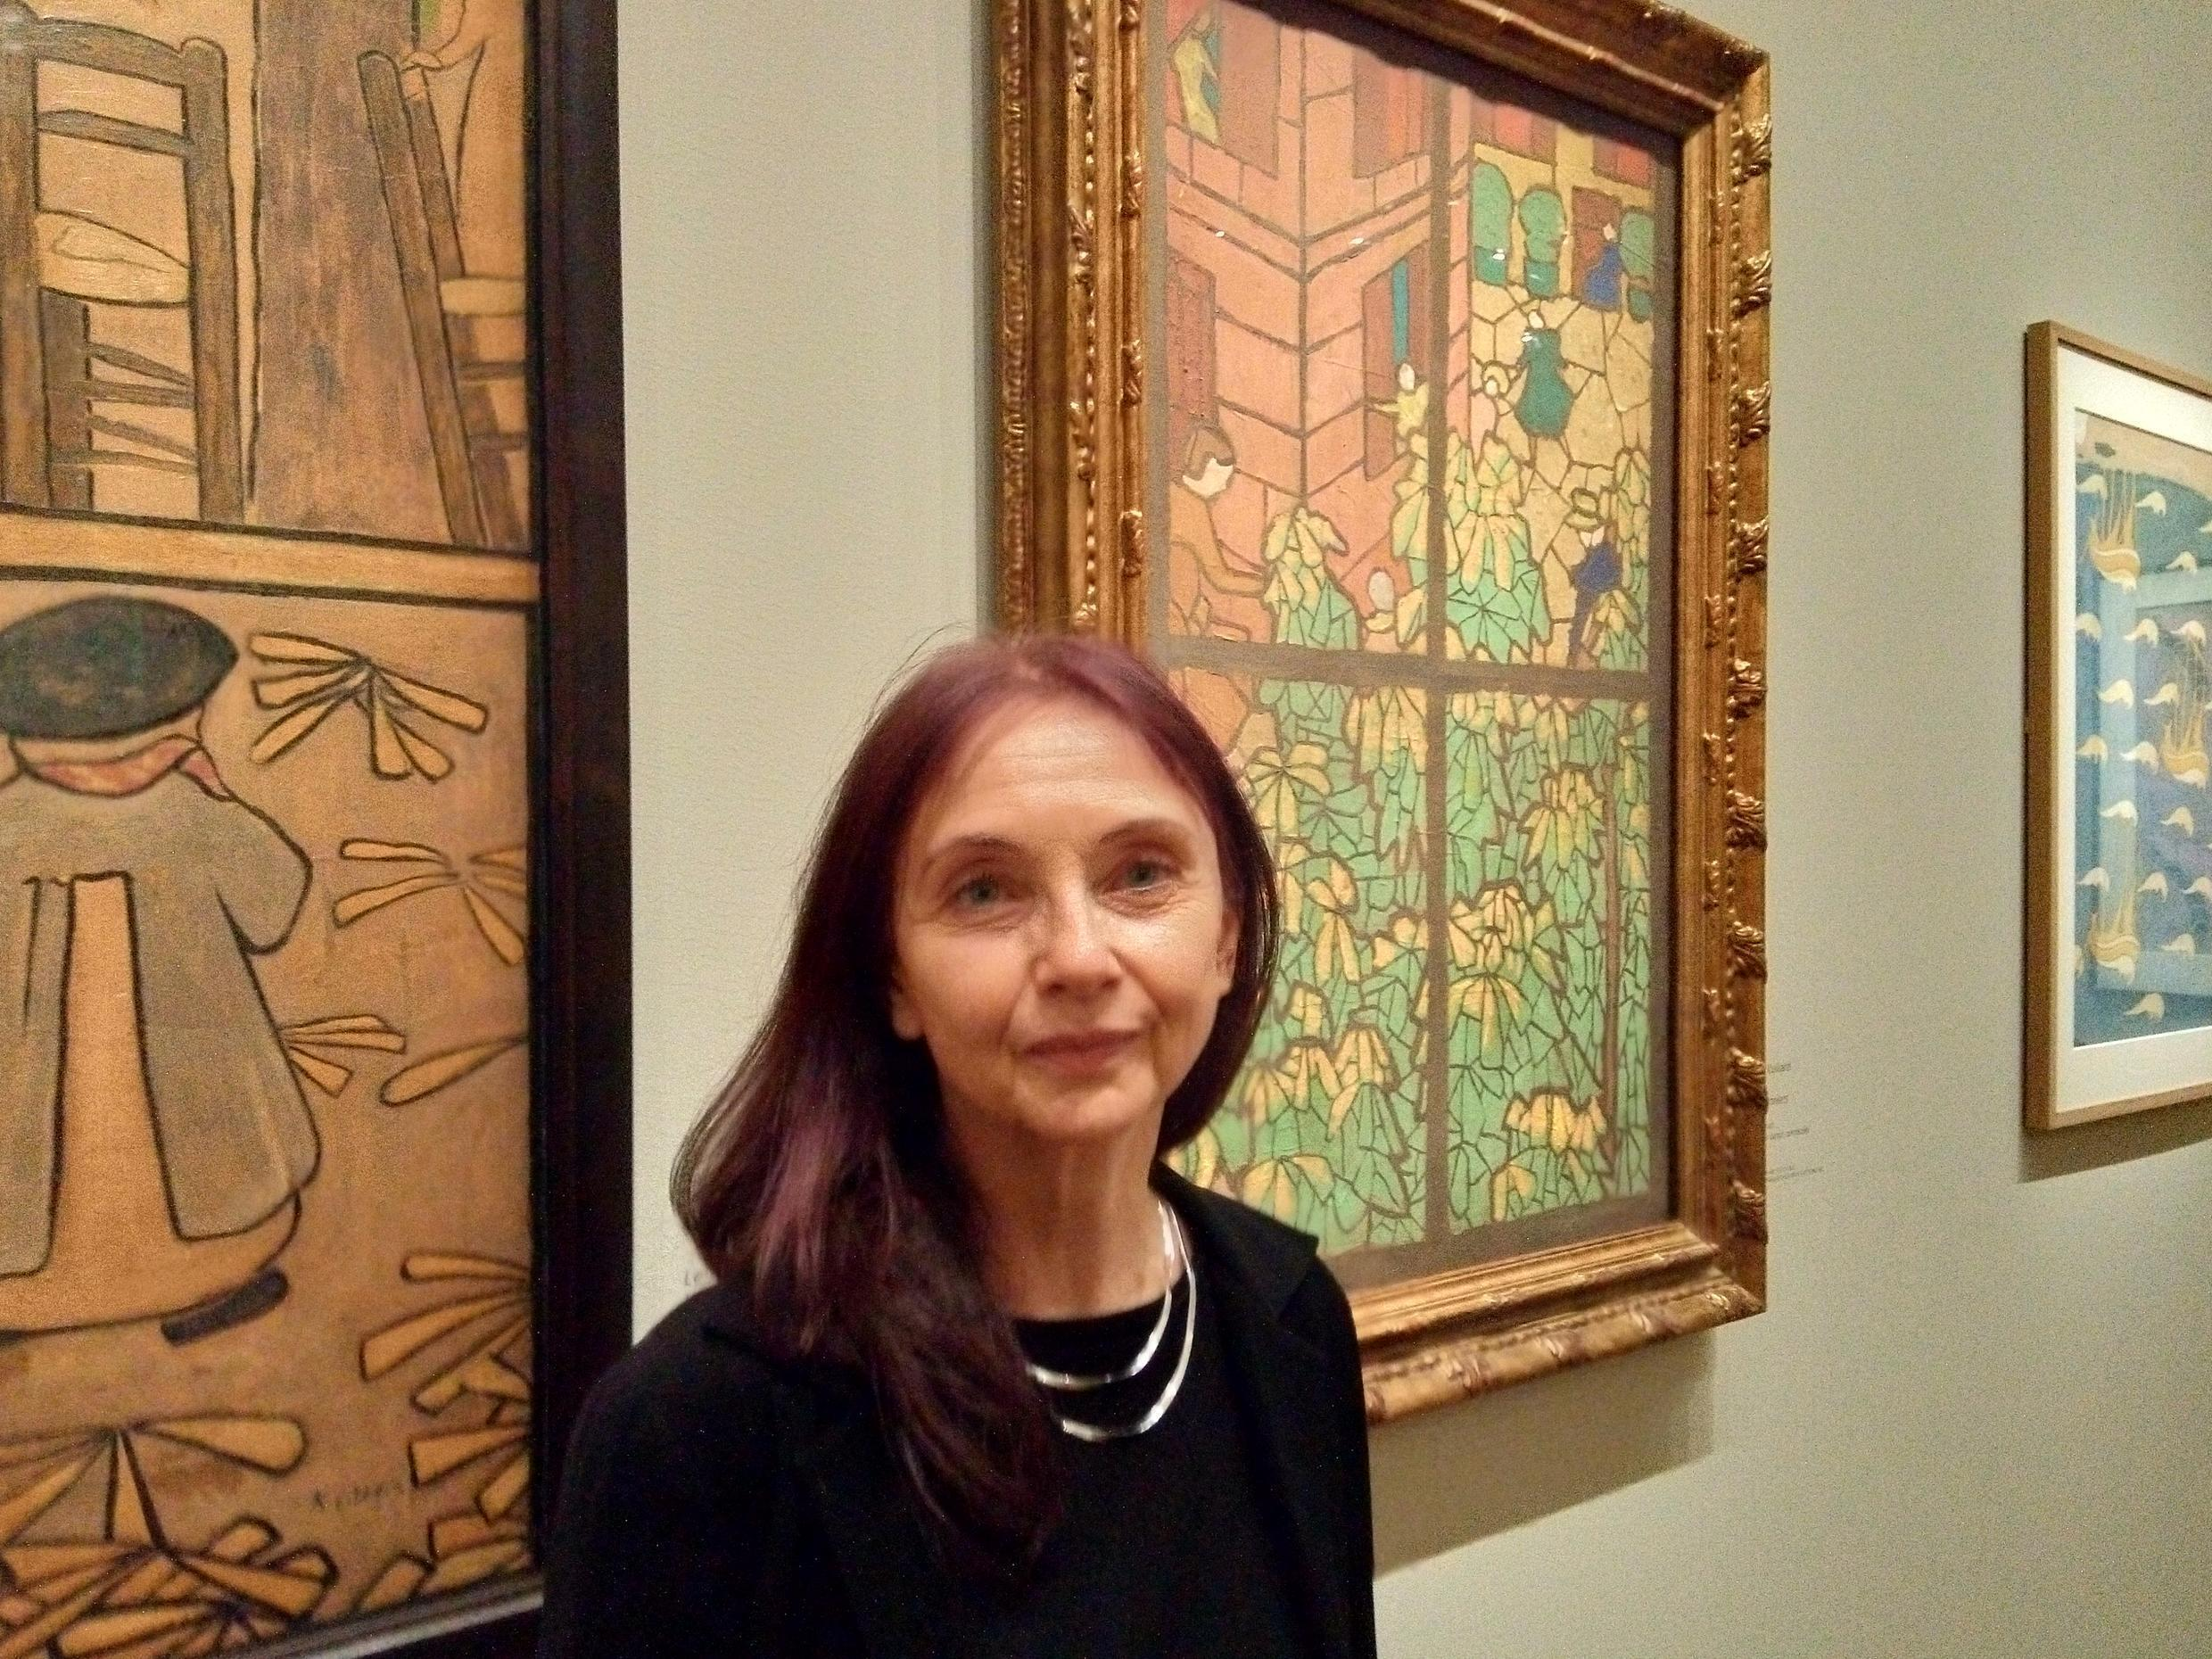 Curator Isabelle Cahn stands in front of a cartoon for a stained-glass window, Les Marroniers by Edouard Vuillard, from the The Eugene and Margaret McDermott Art Fund Inc at Dallas Museum of Art